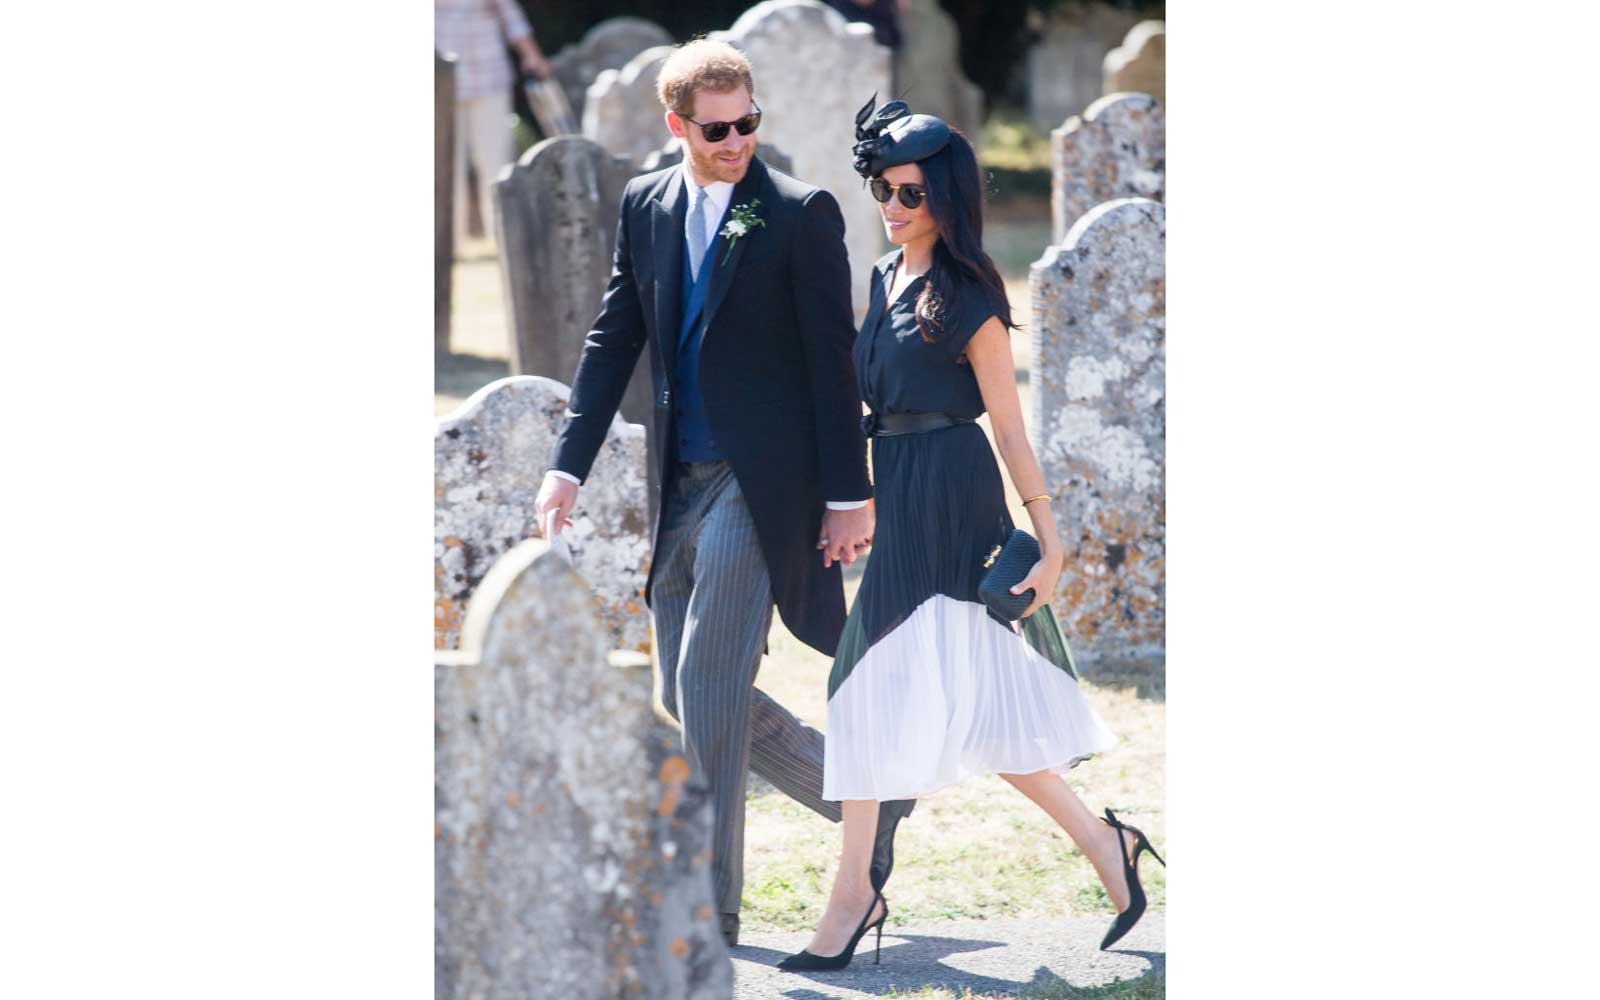 Prince Harry, Duke of Sussex and Meghan, Duchess of Sussex attend the wedding of Charlie Van Straubenzee